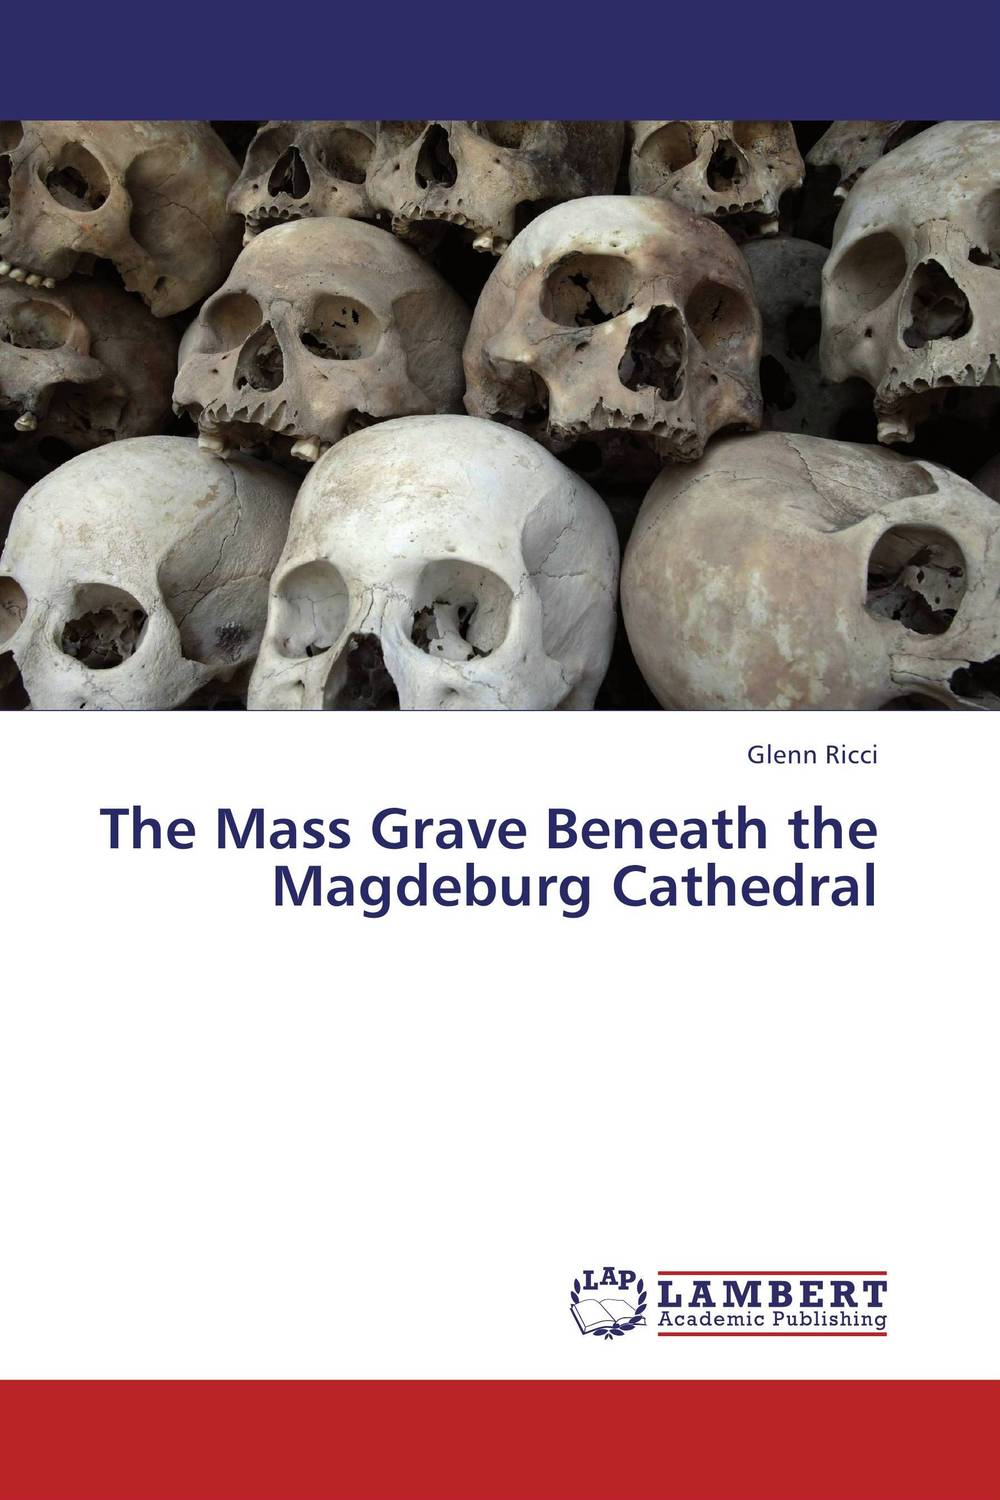 The Mass Grave Beneath the Magdeburg Cathedral hilton mambosho an osteological analysis of human skeletal remains from ansarve site